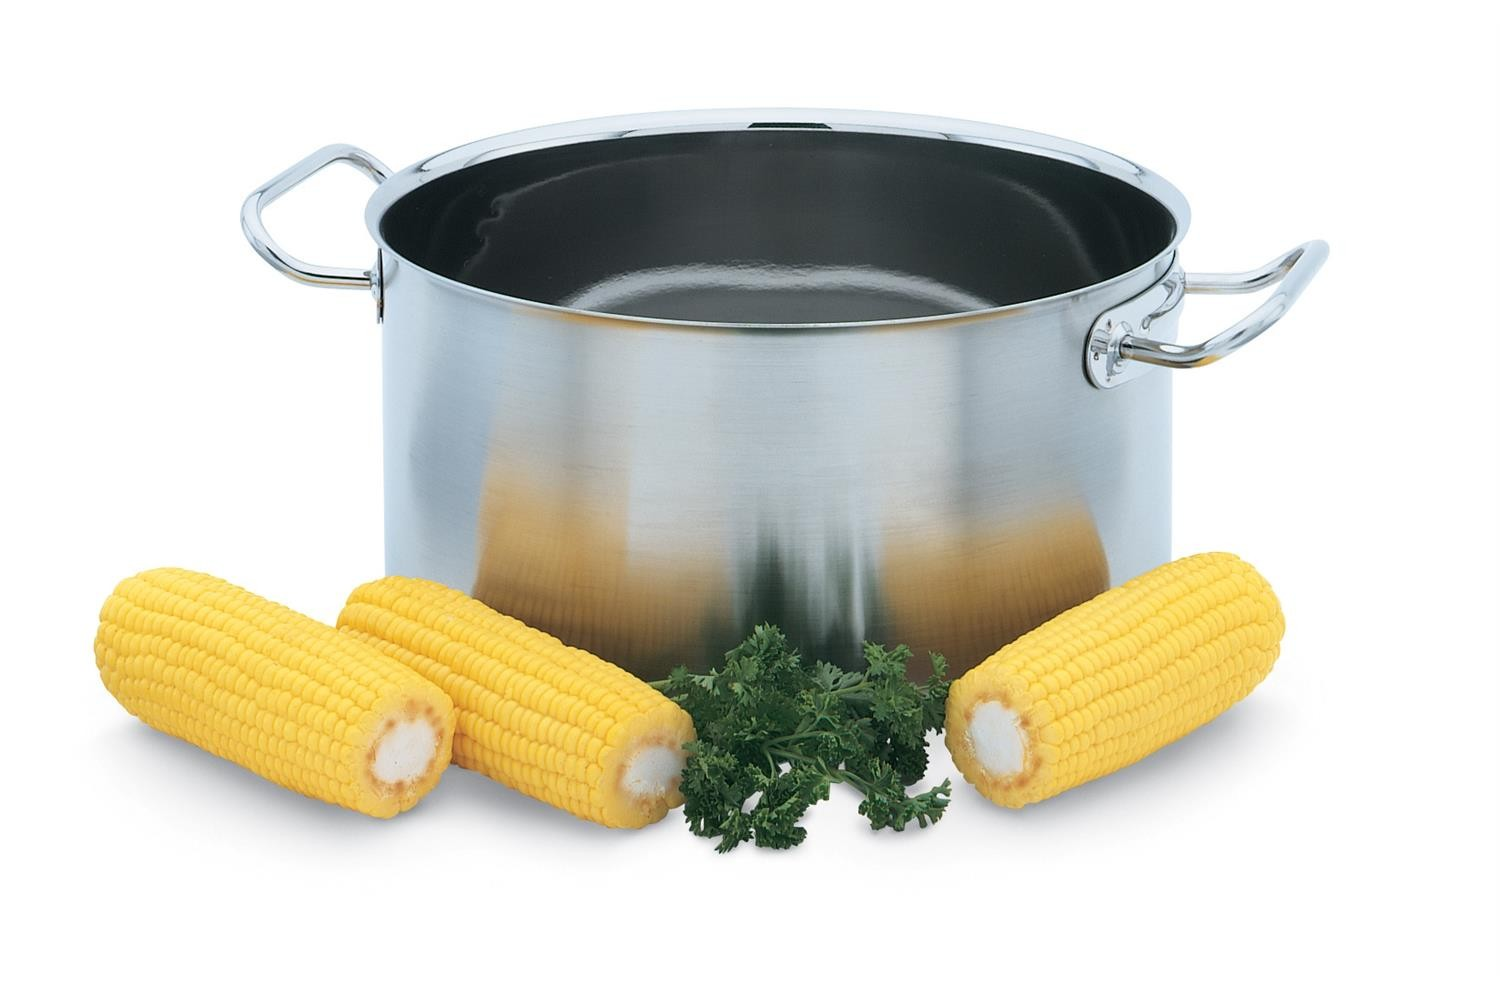 Vollrath 47730 Intrigue Stainless Steel Sauce Pot 7 Qt.